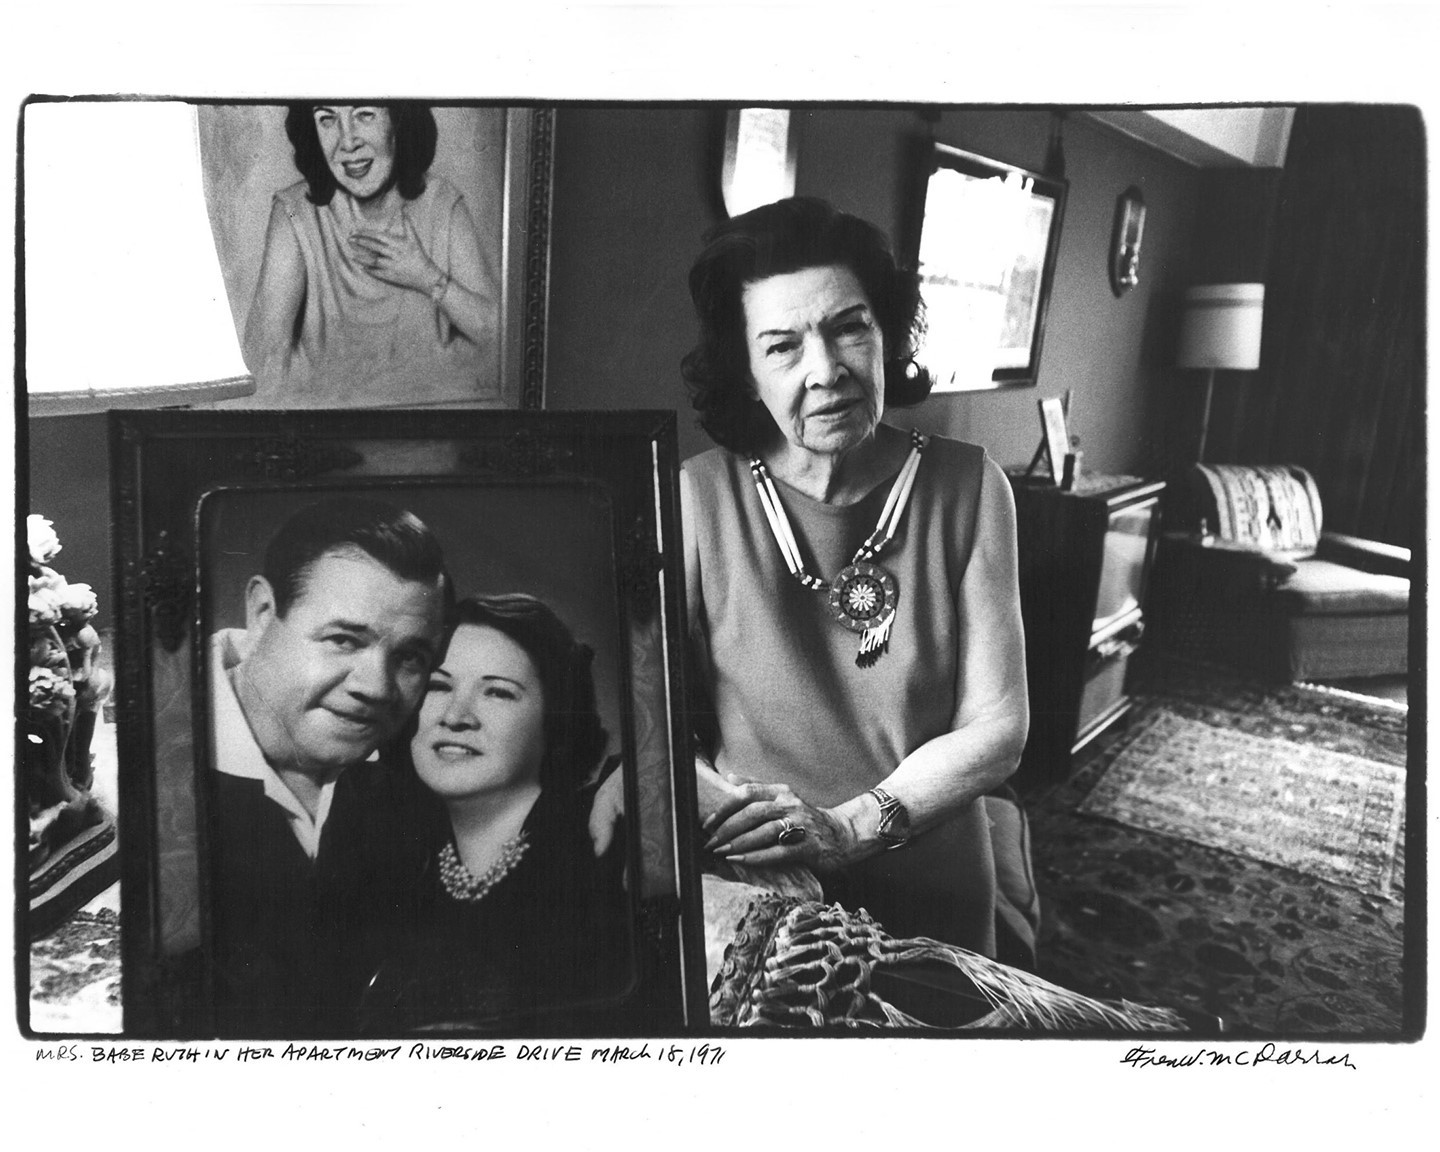 #OnThisDay in 1934, Babe Ruth played his last game of baseball for the New York Yankees.  Here, Claire Merritt Ruth poses in her apartment on Riverside Drive, behind a portrait of her and her late husband Babe. Taken in 1971 by Fred McDarrah.  © Fred W. McDarrah/MUUS Collection